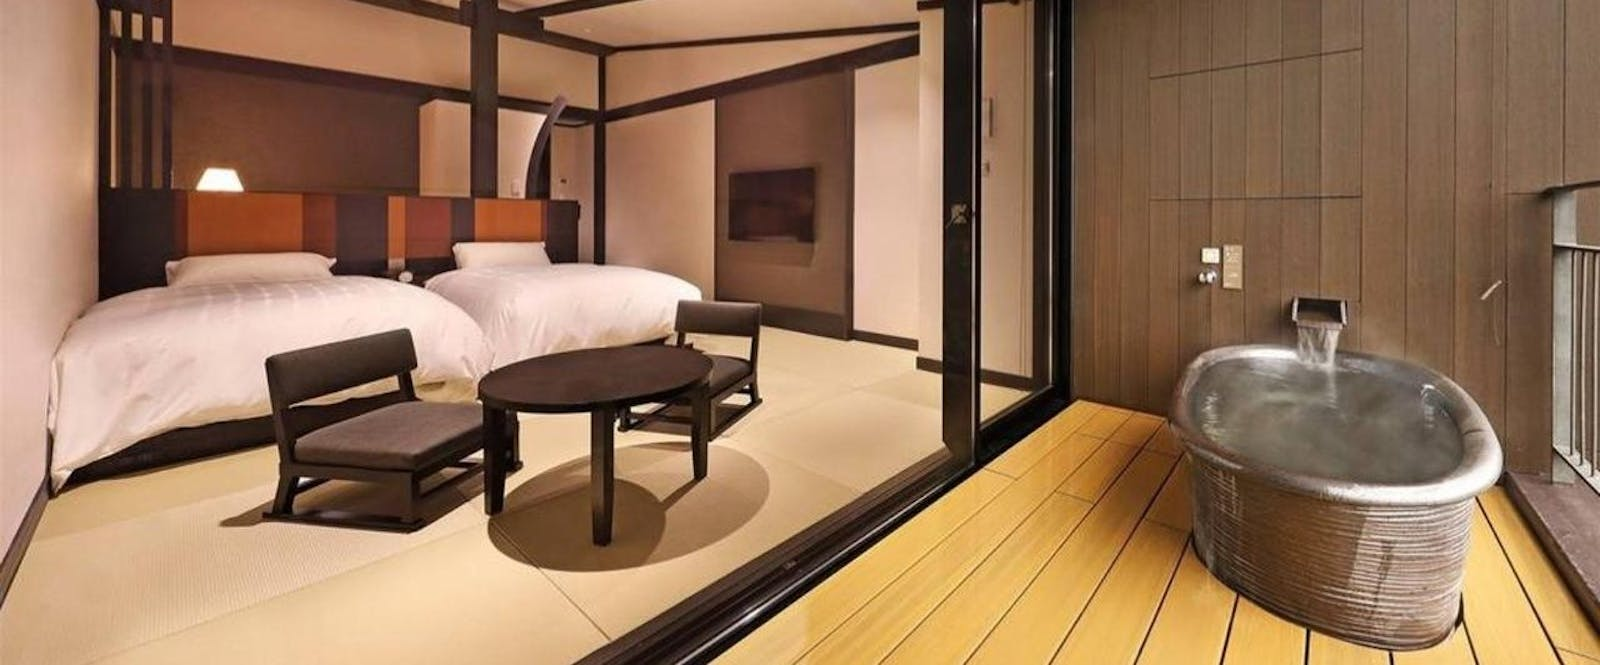 Superior Room with Open-air Bath at Hakone Kowakien Tenyu, Japan